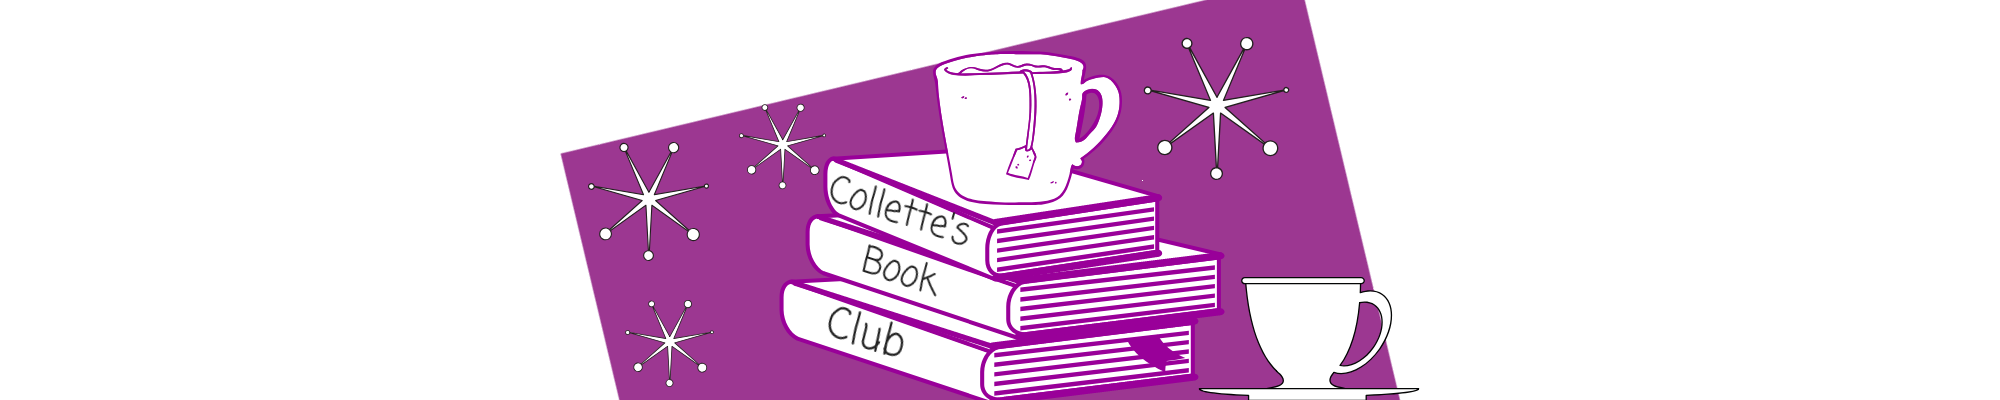 Collette's Book Club: Dating & Relationship Books